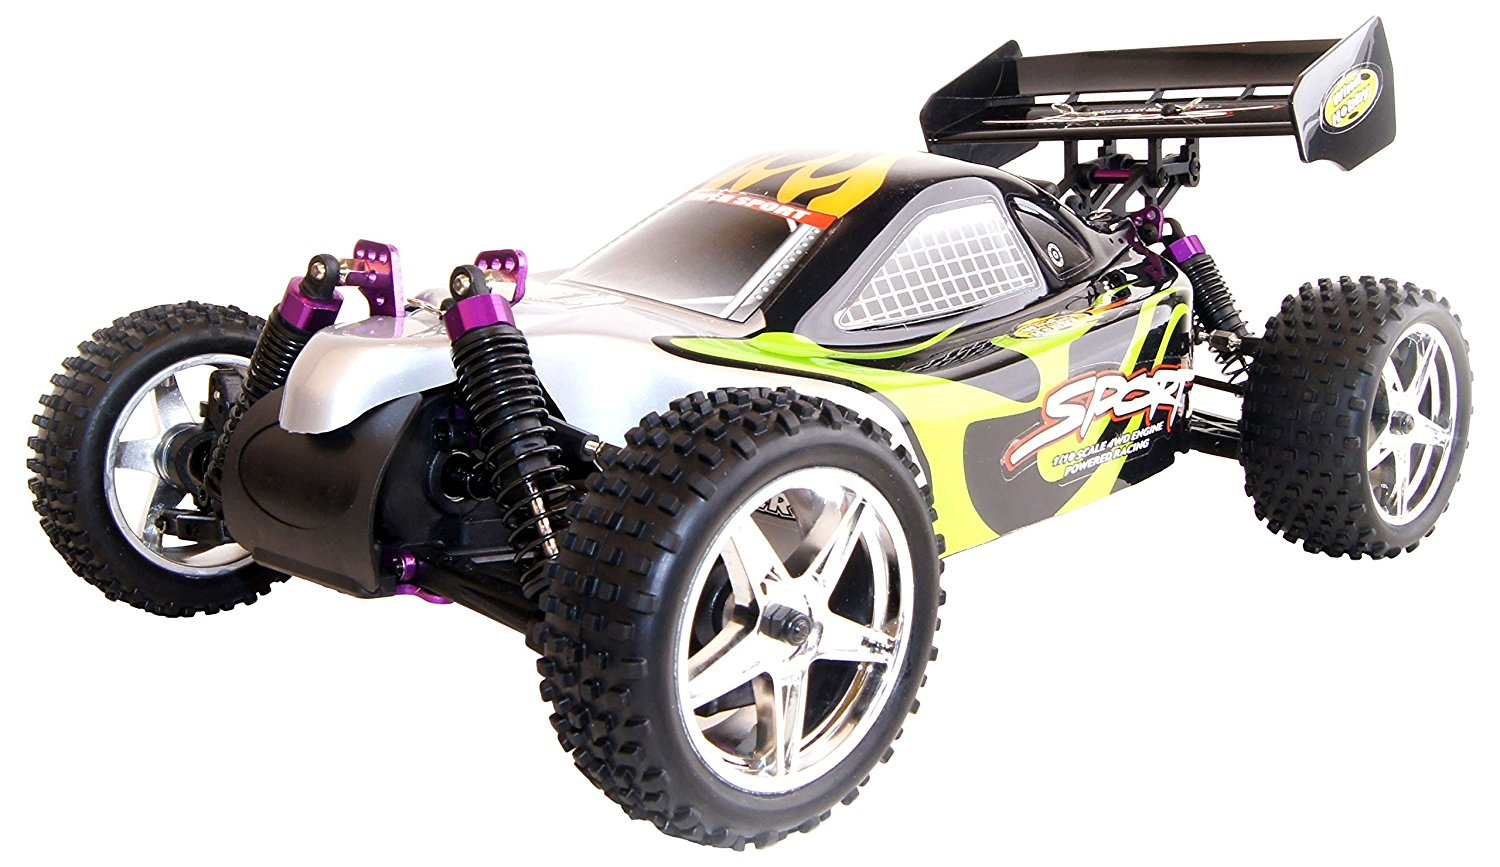 4WD High Speed Nitro Powered Off Road Racing Buggy Vertex 18 CXP, Green 1/10